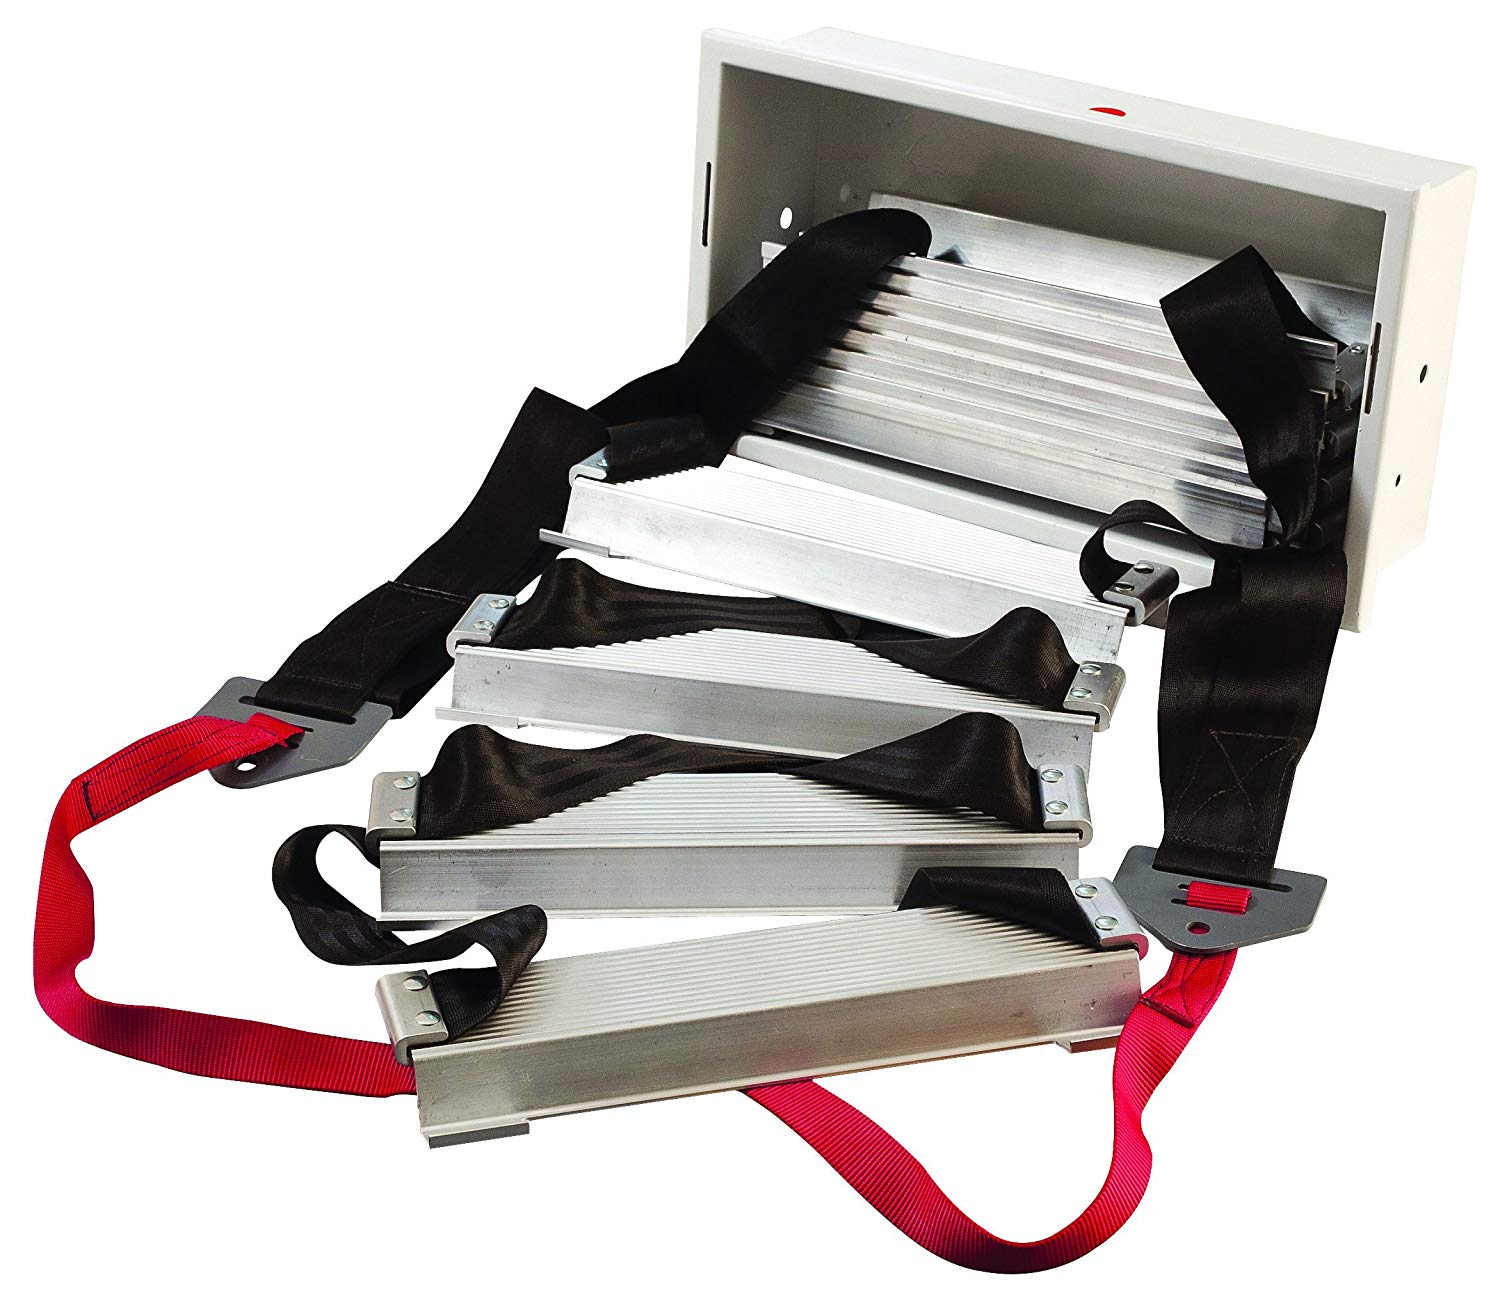 Werner brand fire escape ladder